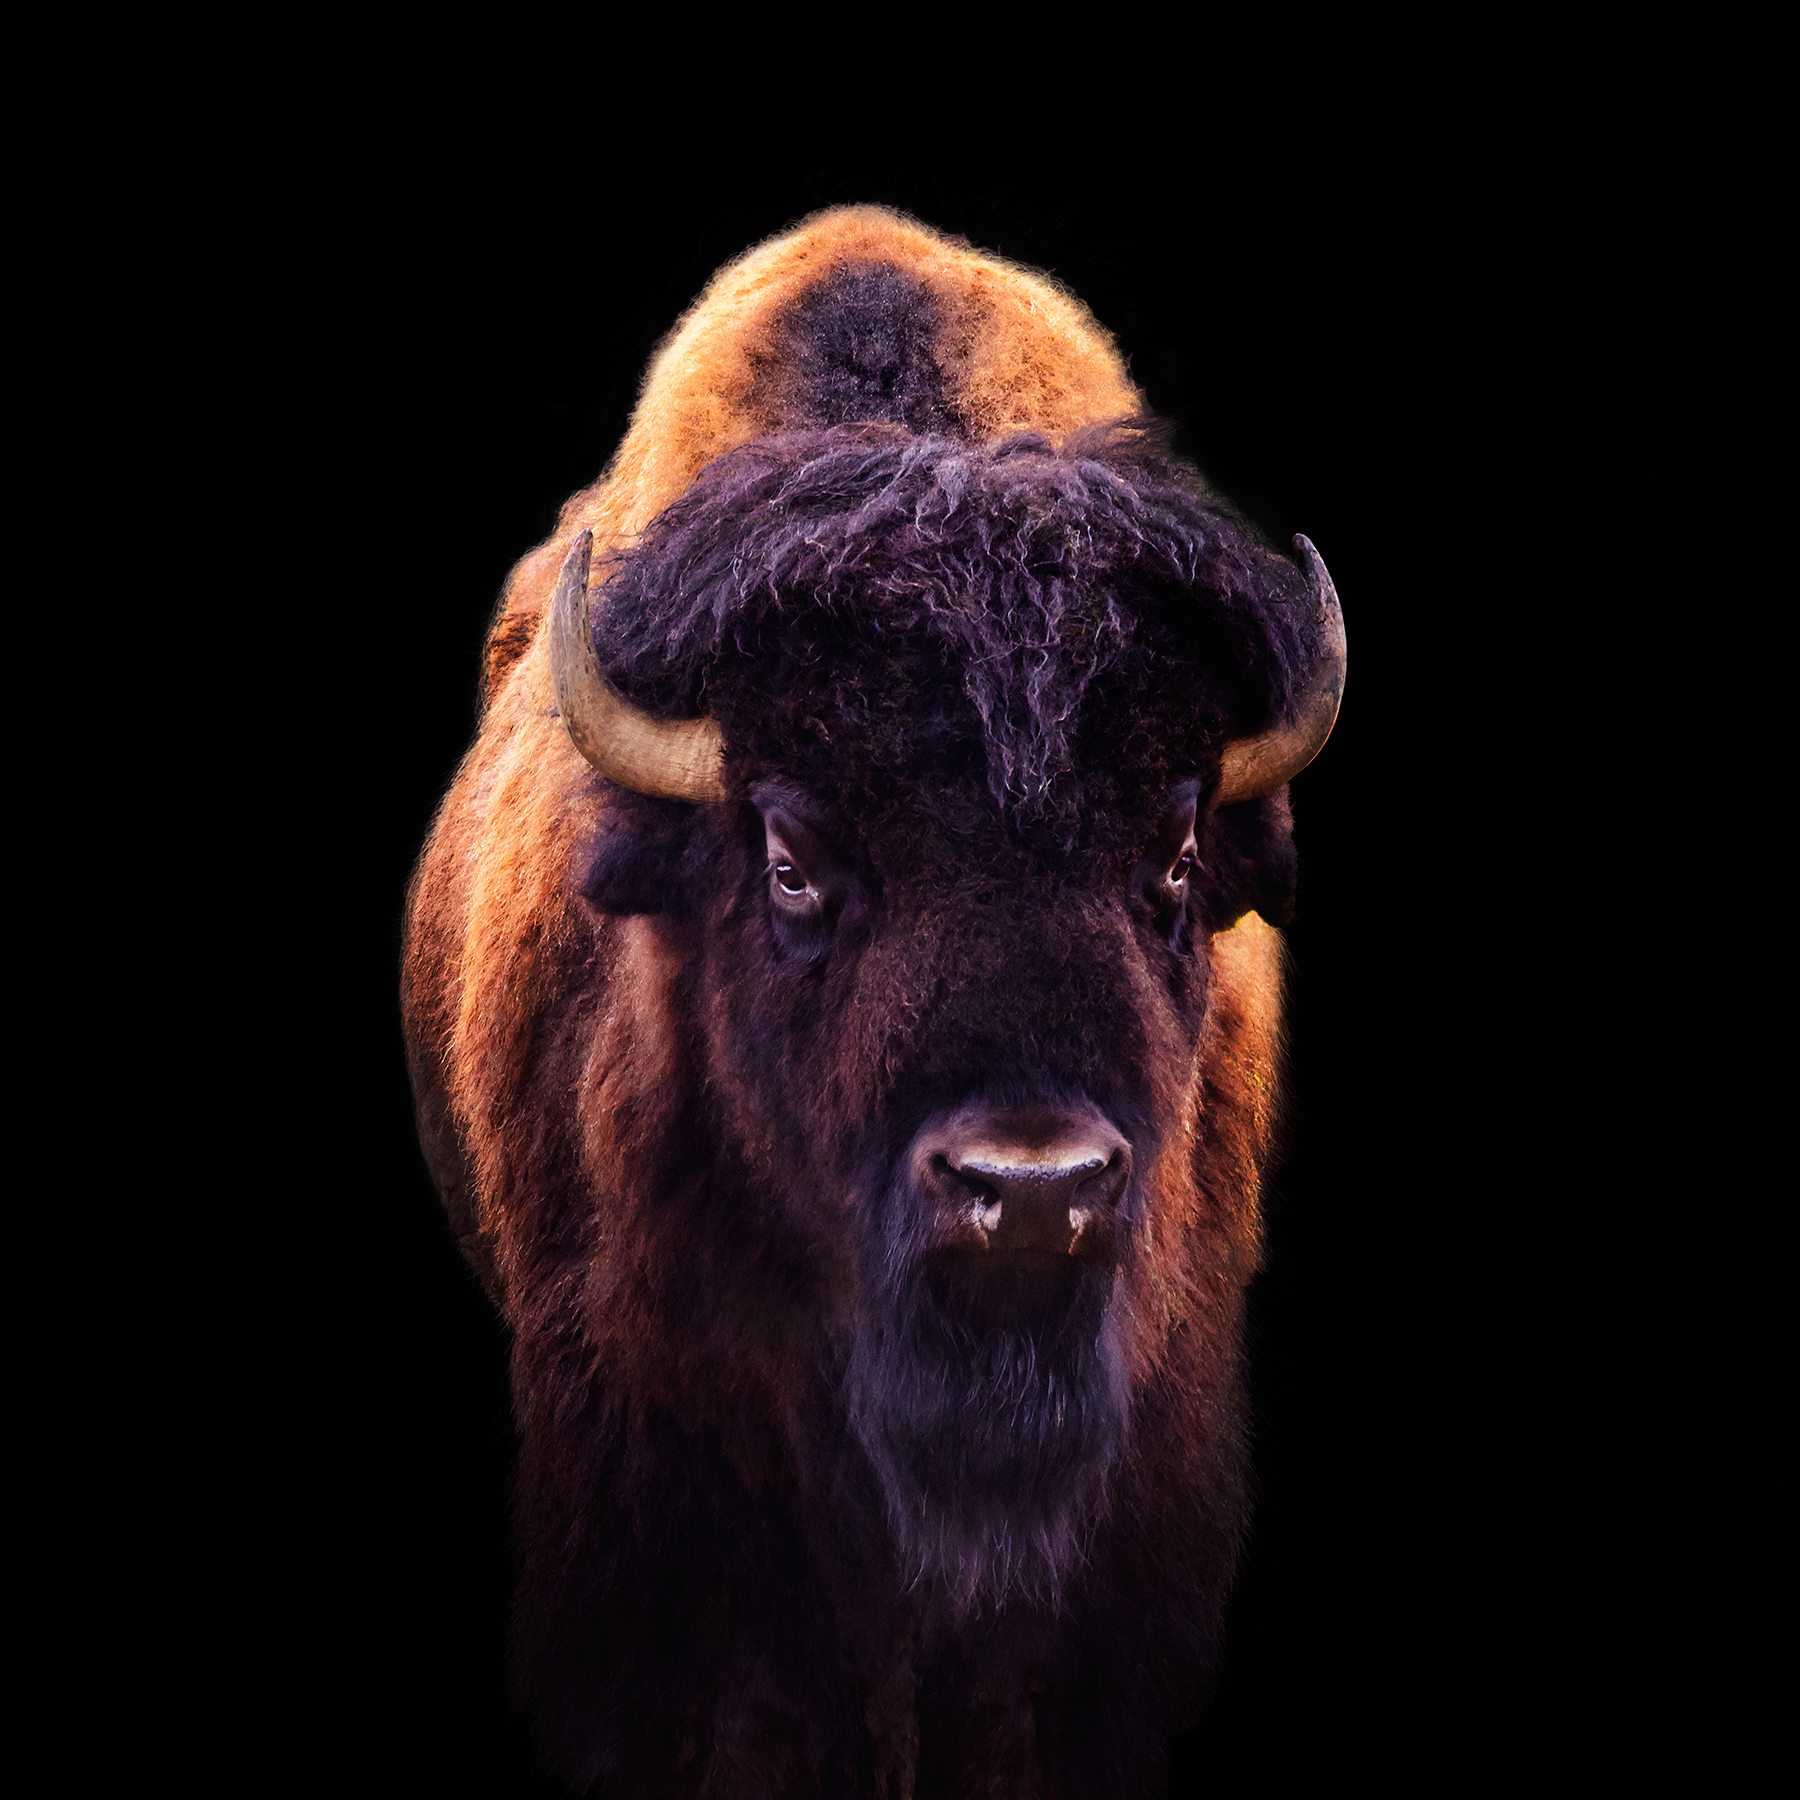 MOWHAWK-BISON-FARM_GOSHEN-©-JONATHAN-R.-BECKERMAN-PHOTOGRAPHY_042015.jpg